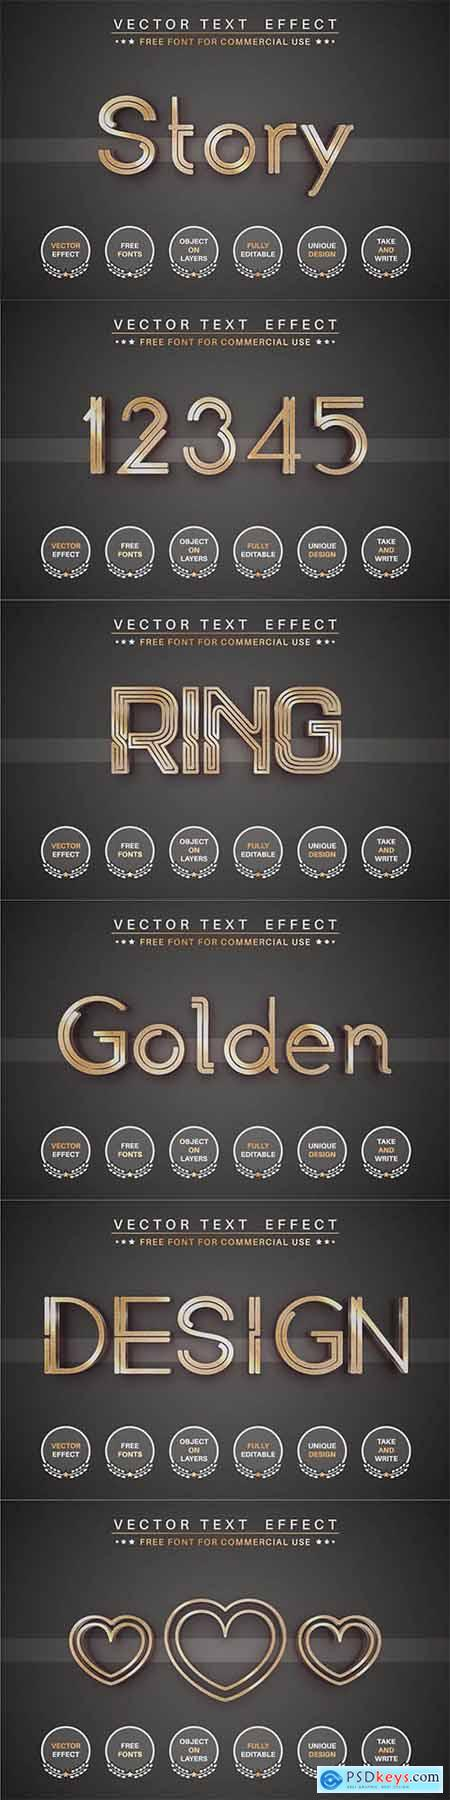 Golden story - editable text effect, font style